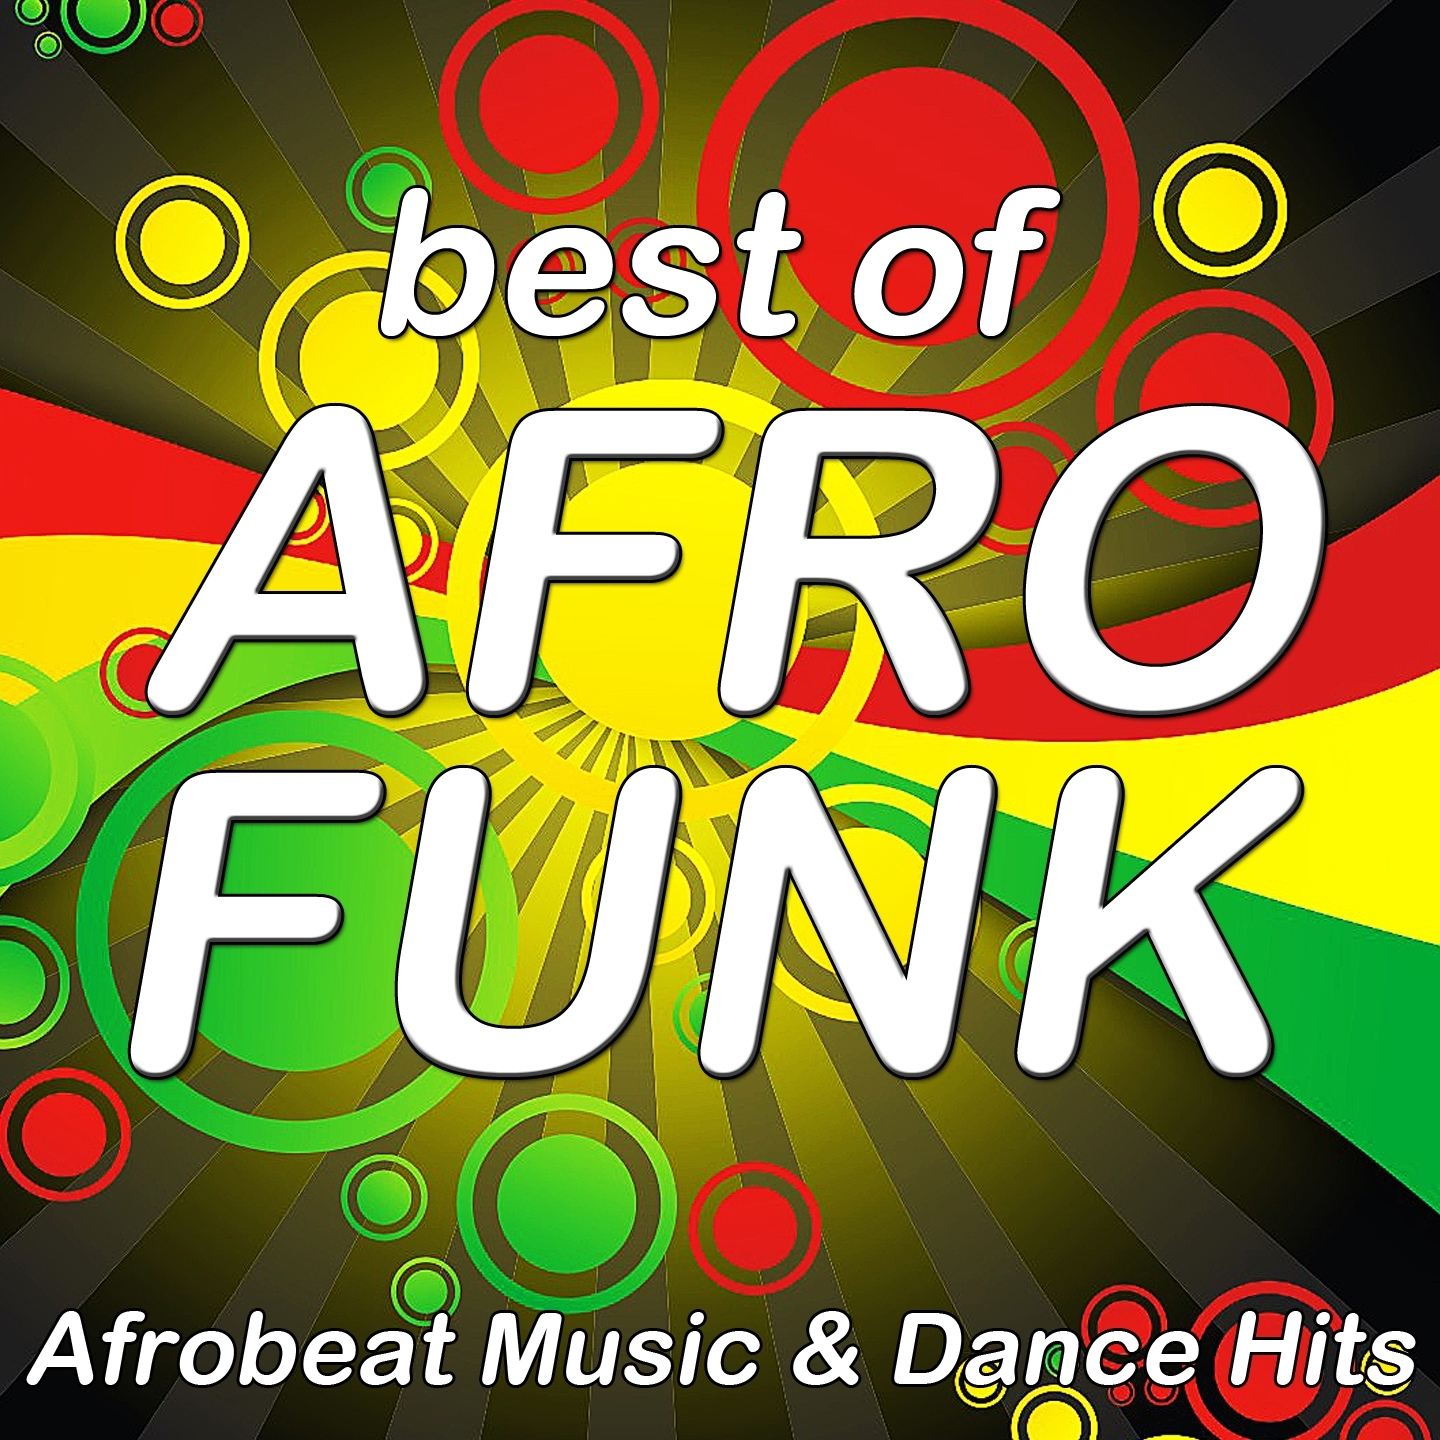 Best of Afro Funk